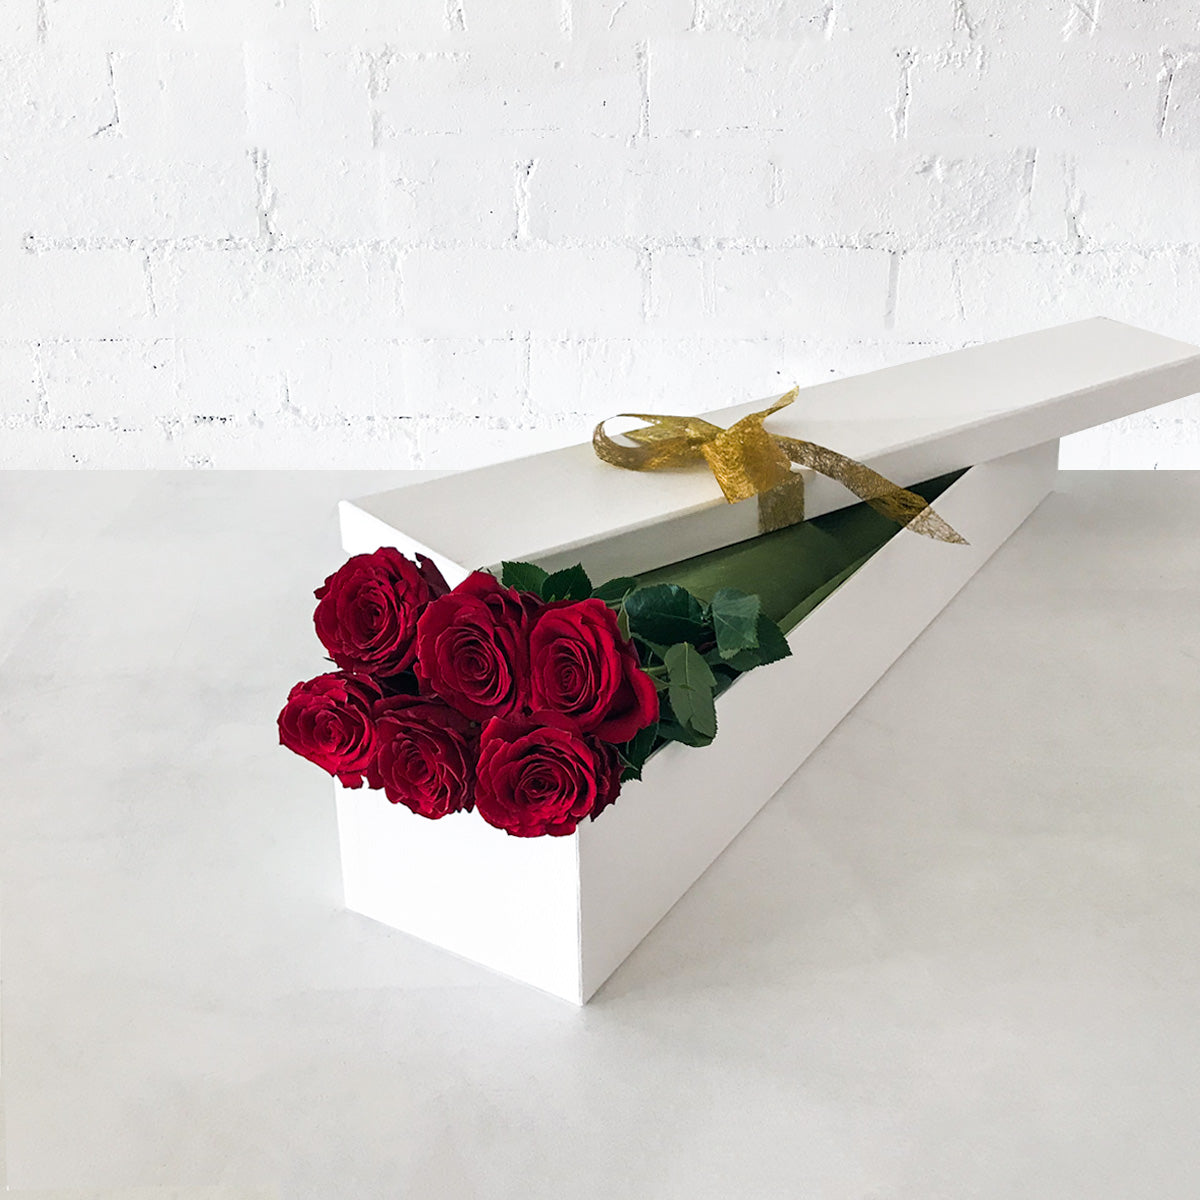 Buy 6 Red Roses for Valentines Day